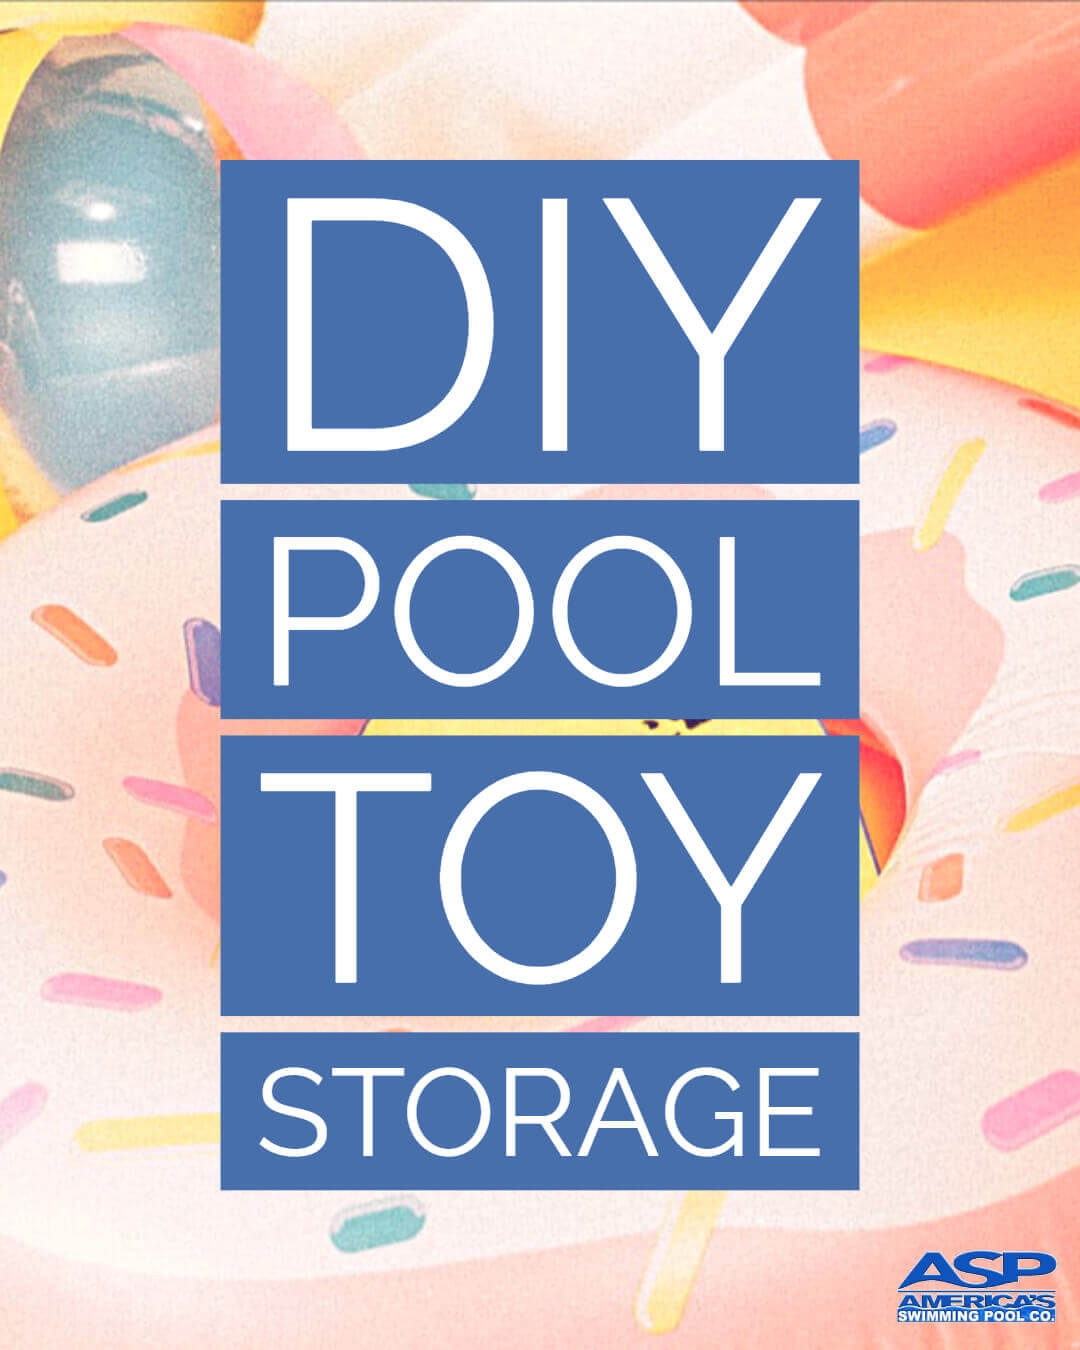 DIY pool toy storage design by ASP